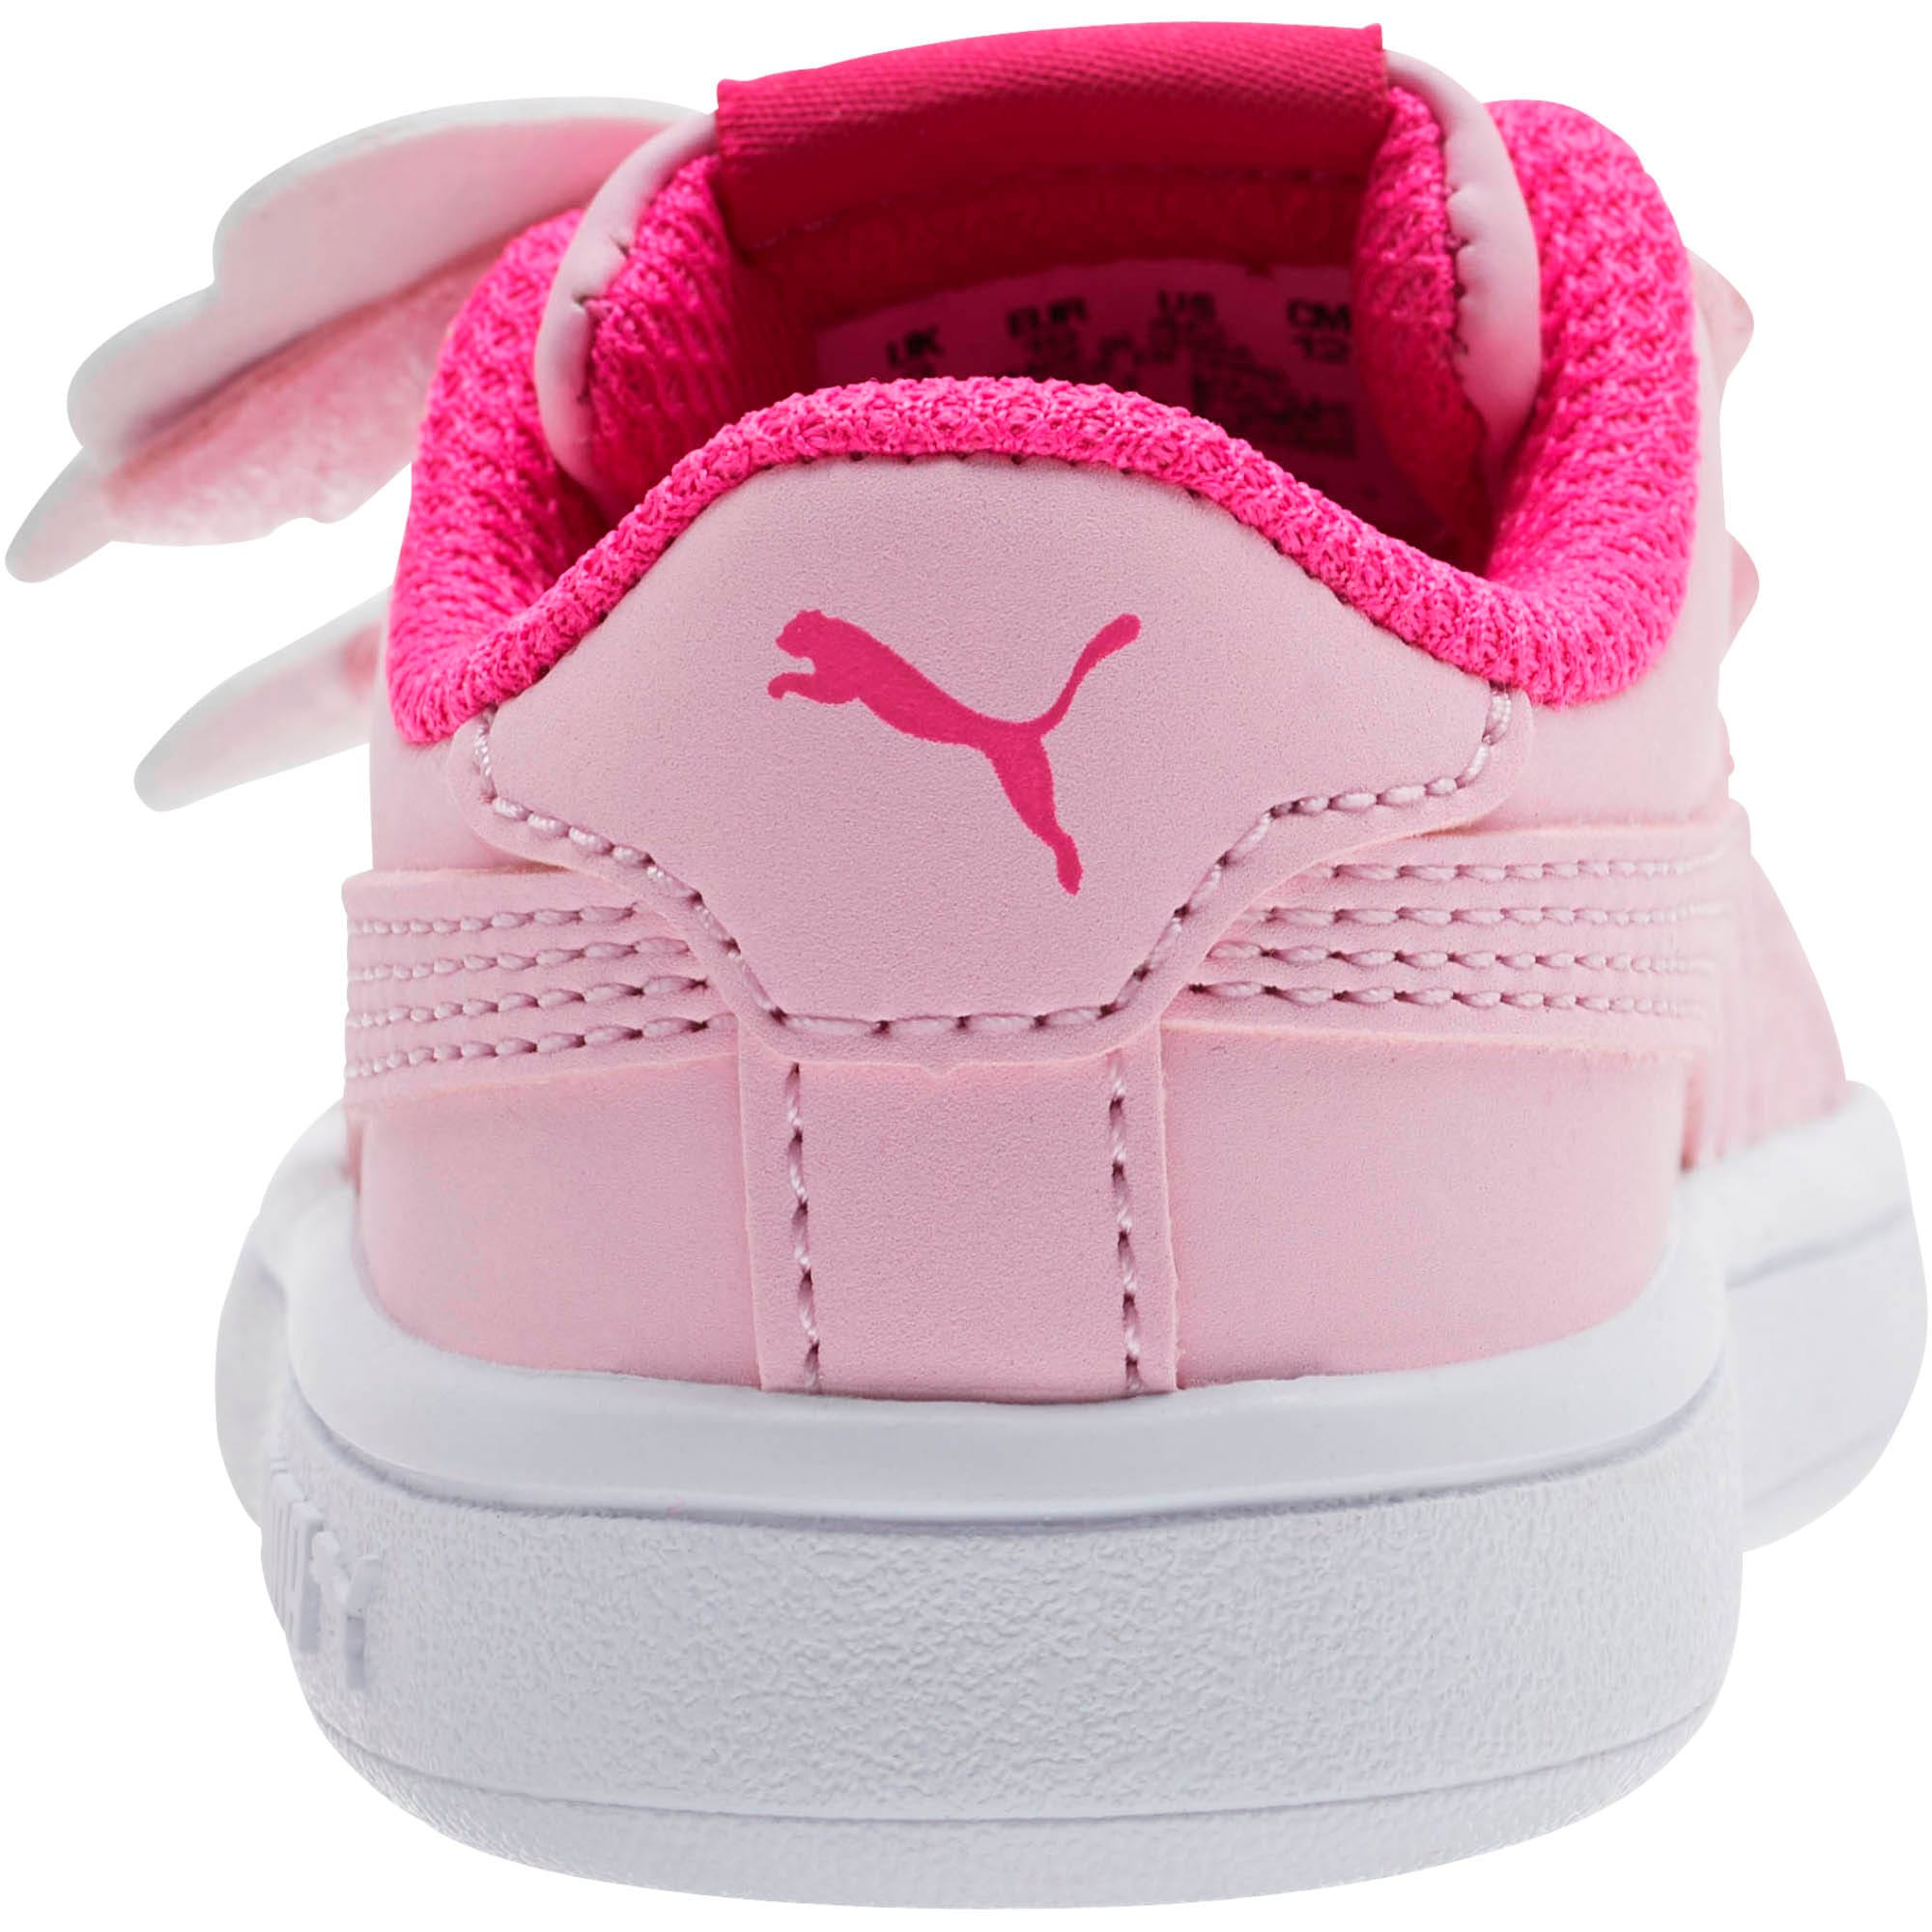 Thumbnail 3 of PUMA Smash v2 Butterfly AC Toddler Shoes, Pale Pink-F Purple-White, medium